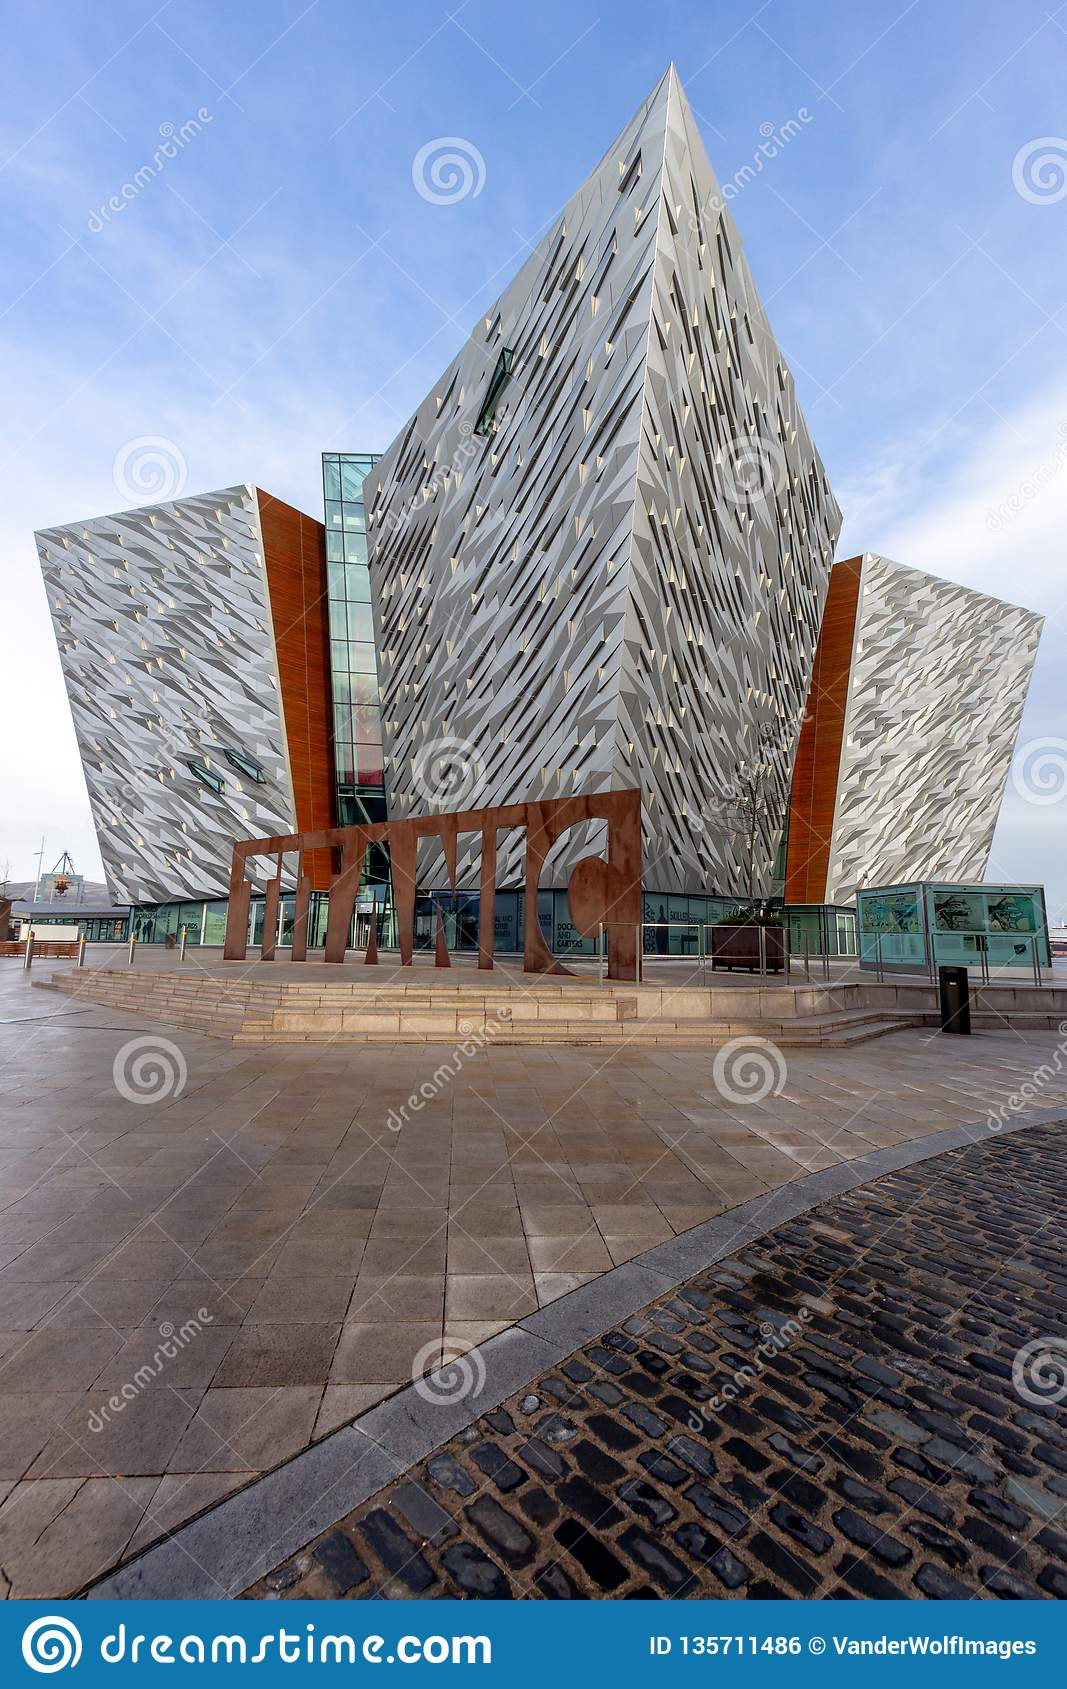 Titanic Belfast visitor attraction and a monument